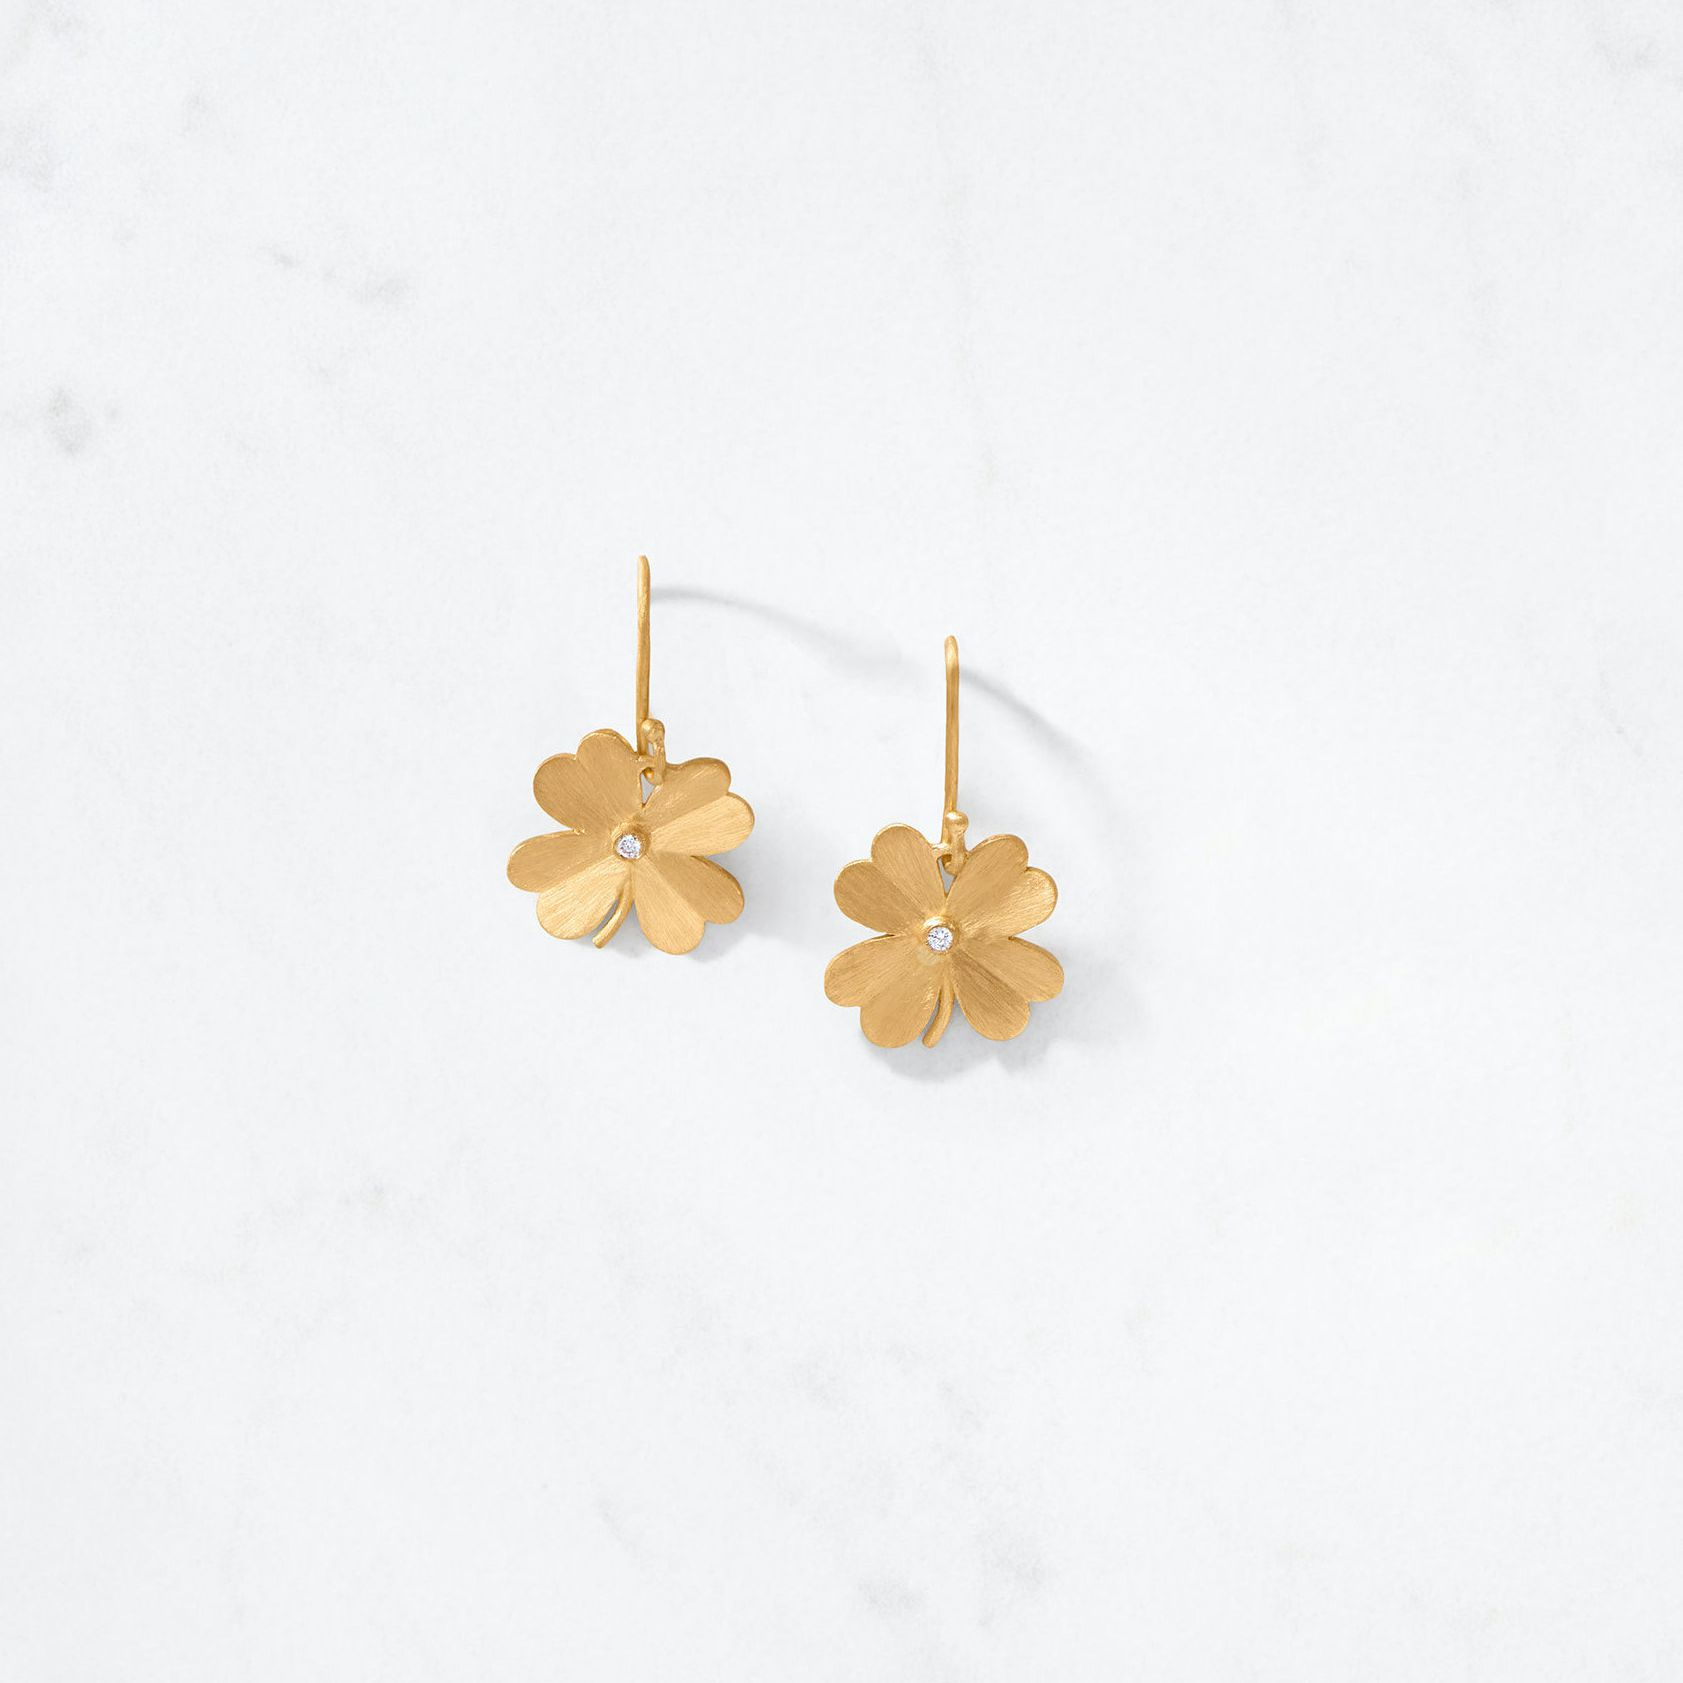 Auvere 4 Leaf Clover Earring $975